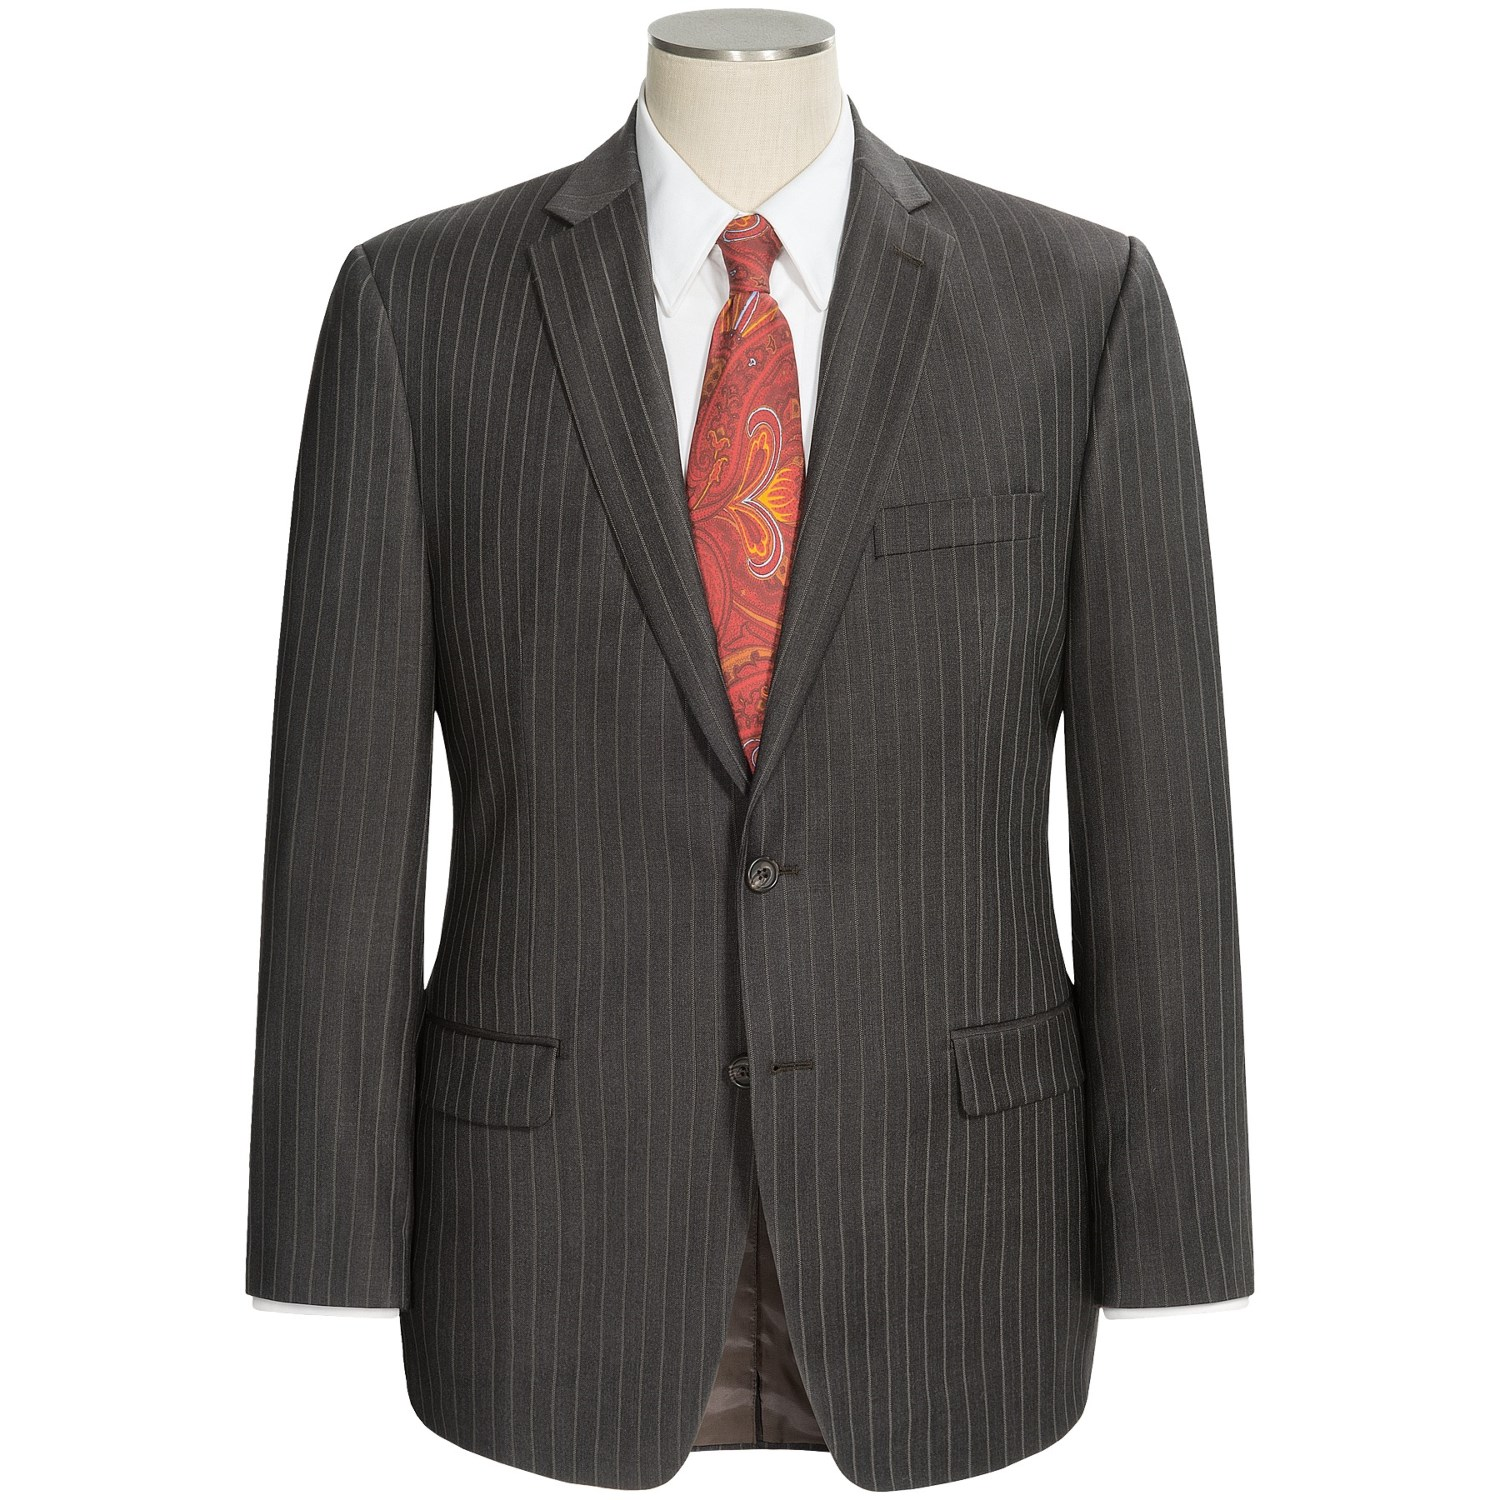 K and g mens clothing store Cheap online clothing stores